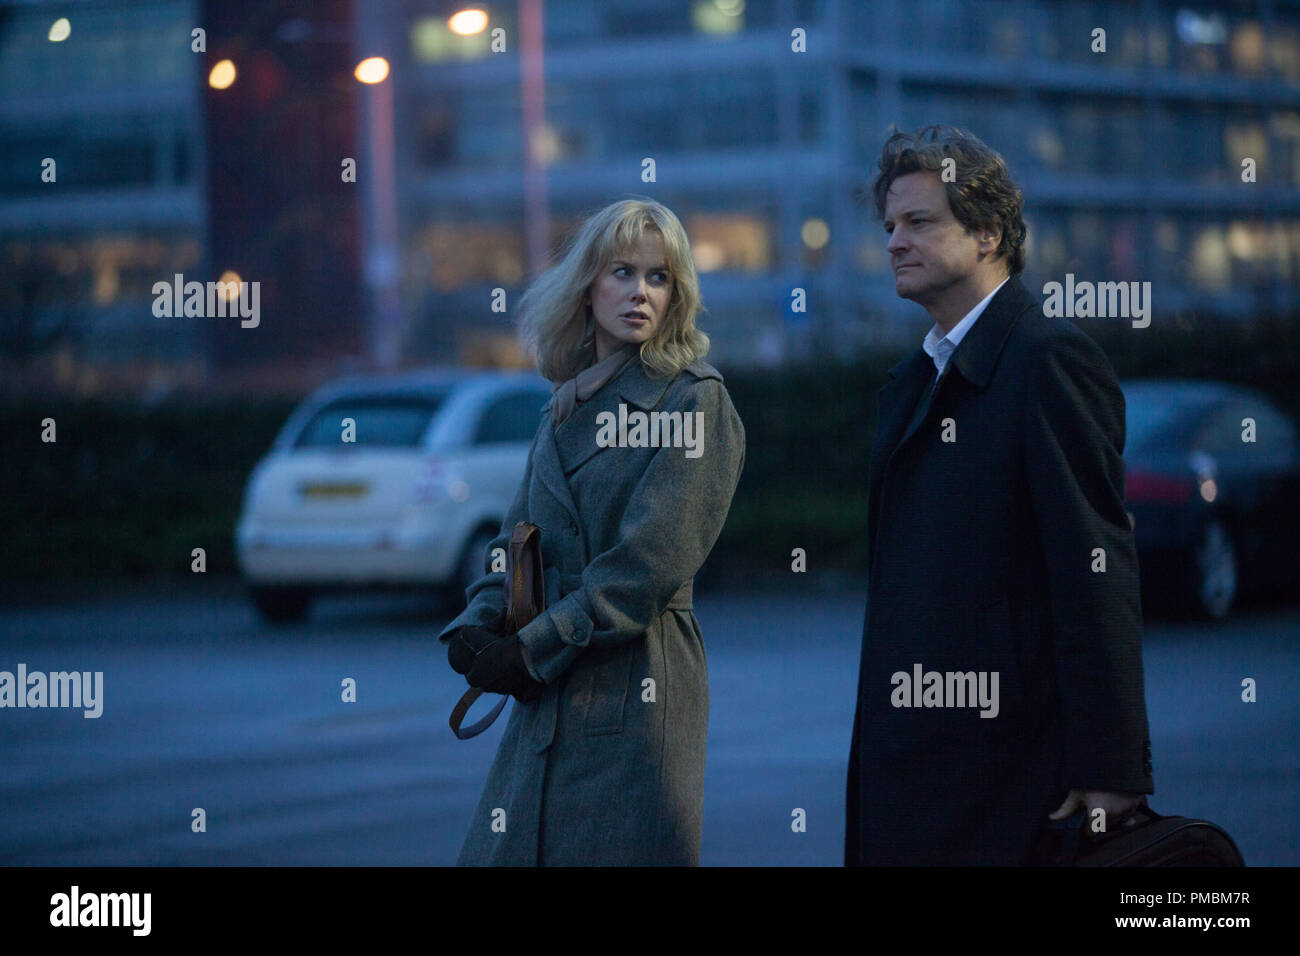 Christine (NICOLE KIDMAN), an amnesiac, tentatively follows her husband Ben (COLIN FIRTH), to what should be a familiar destination on their anniversary in BEFORE I GO TO SLEEP. - Stock Image